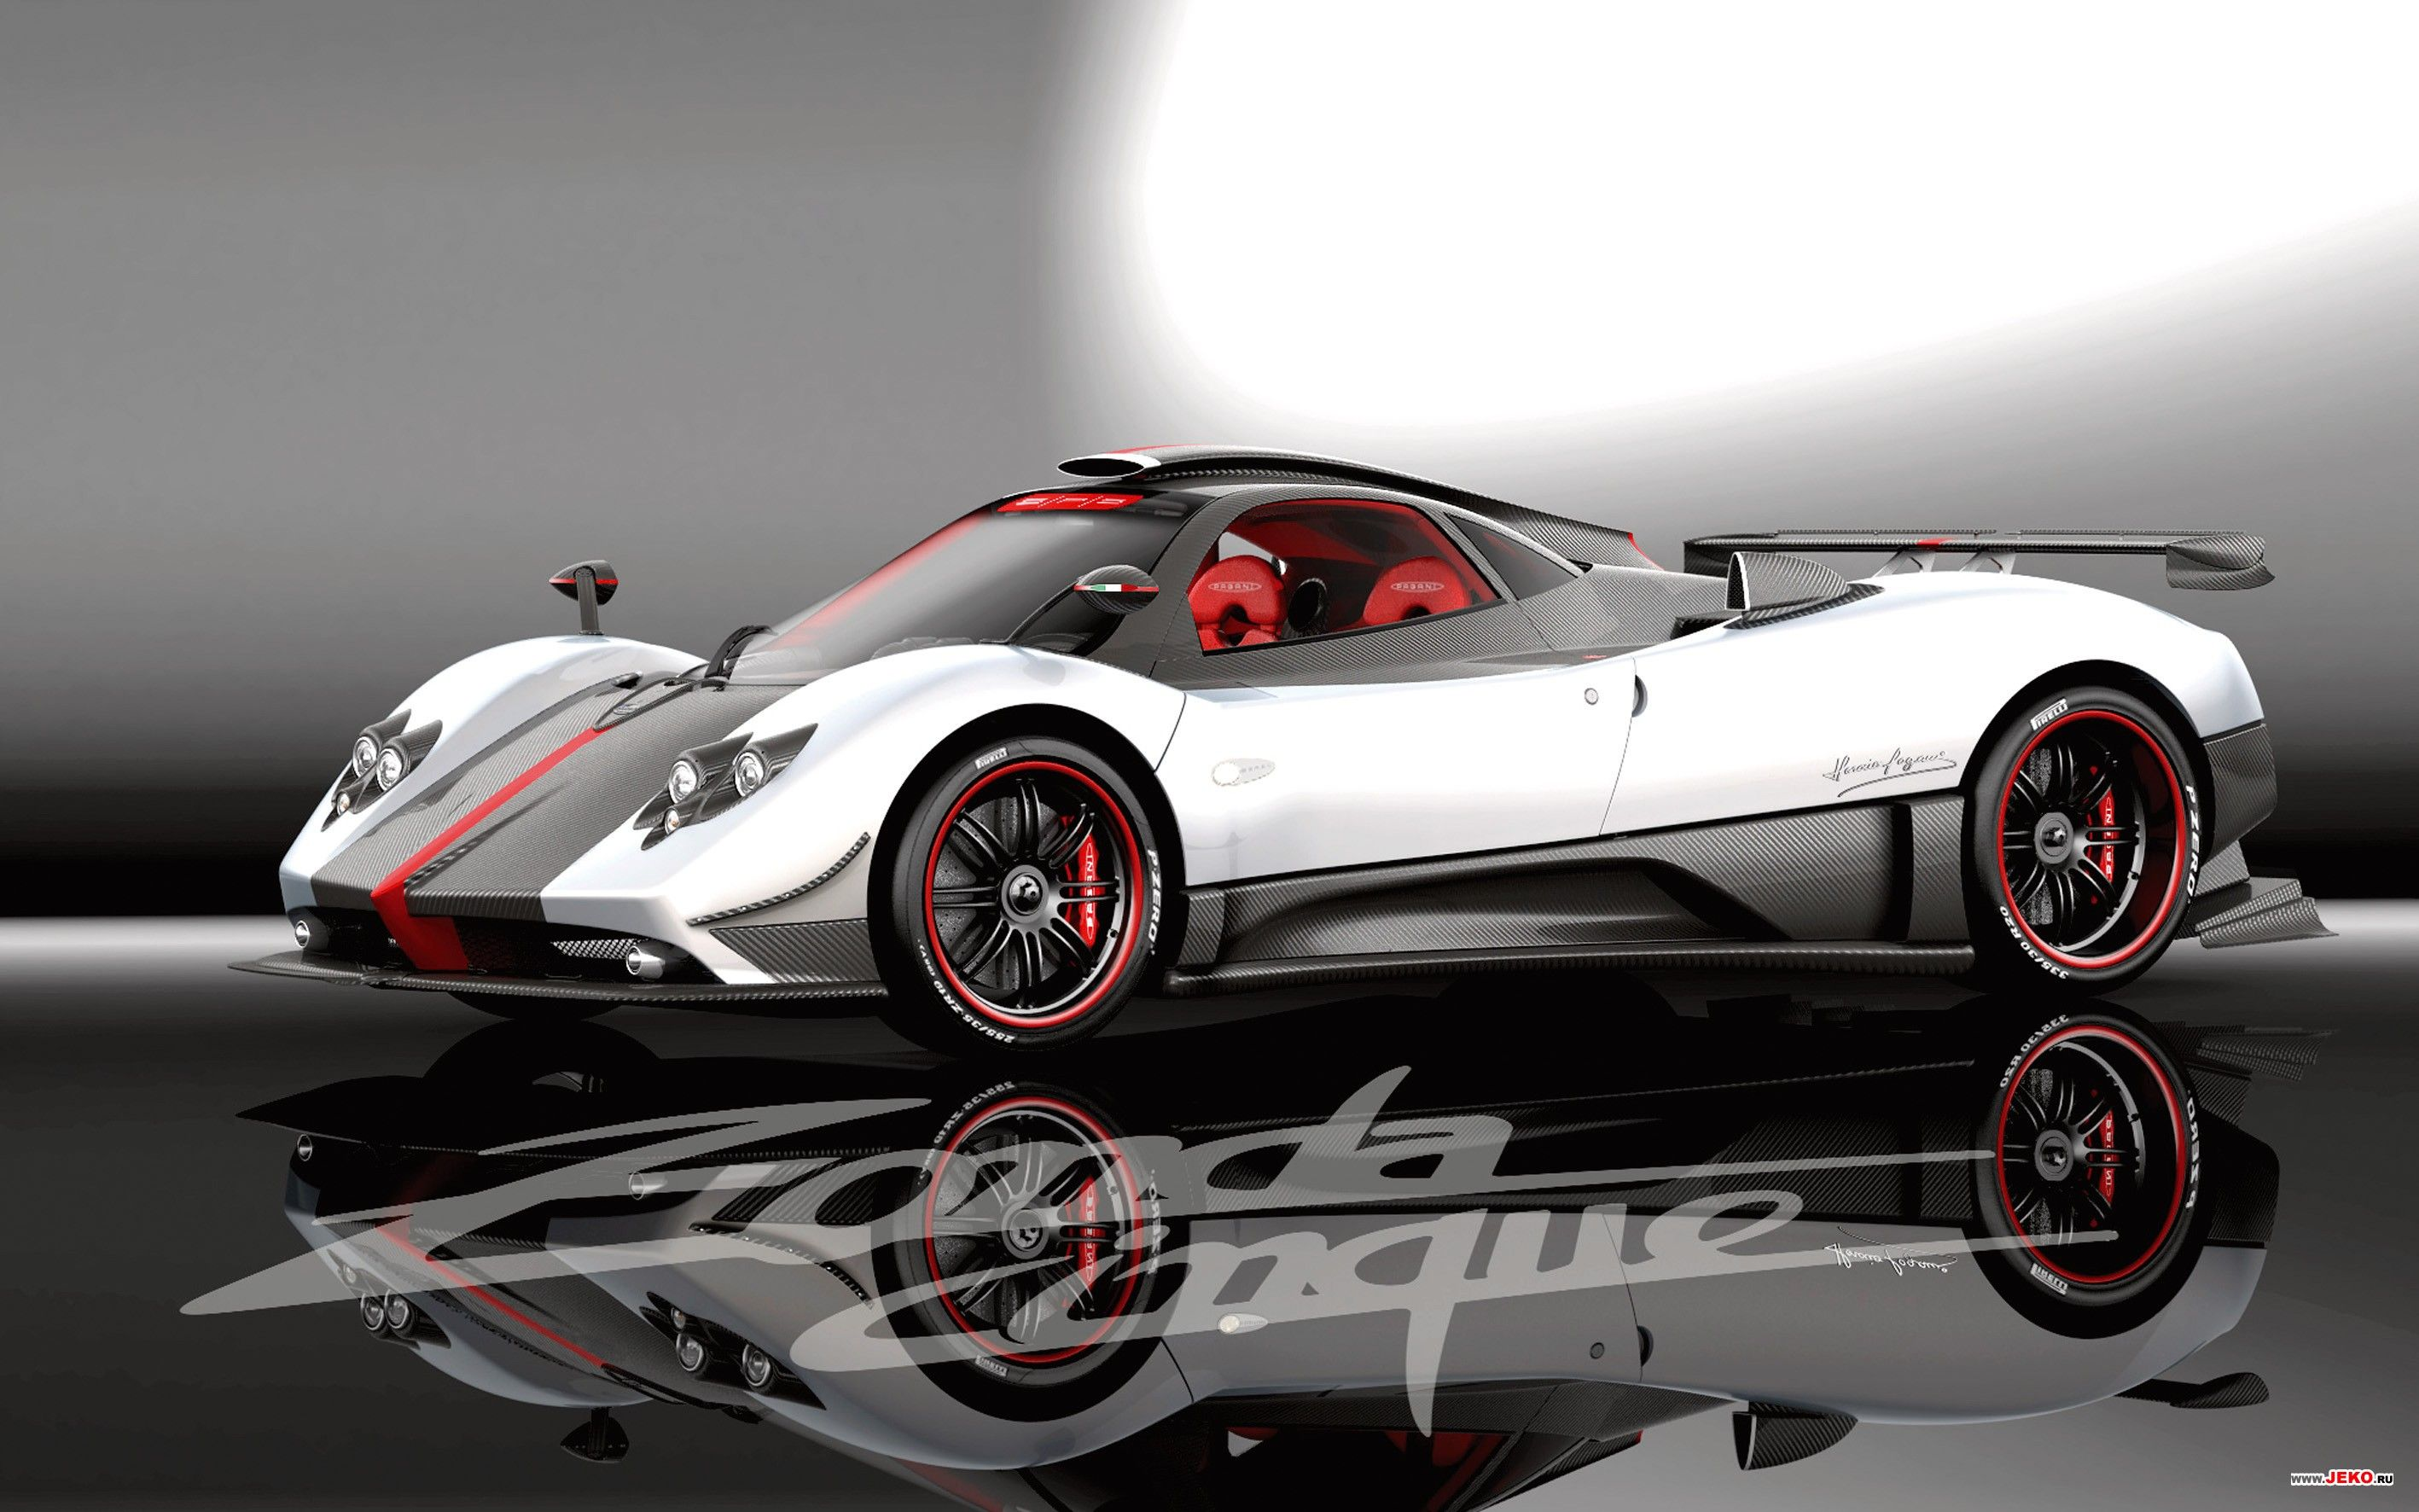 Pagani wallpapers | Pagani | Pinterest | Pagani zonda, Wallpaper and ...